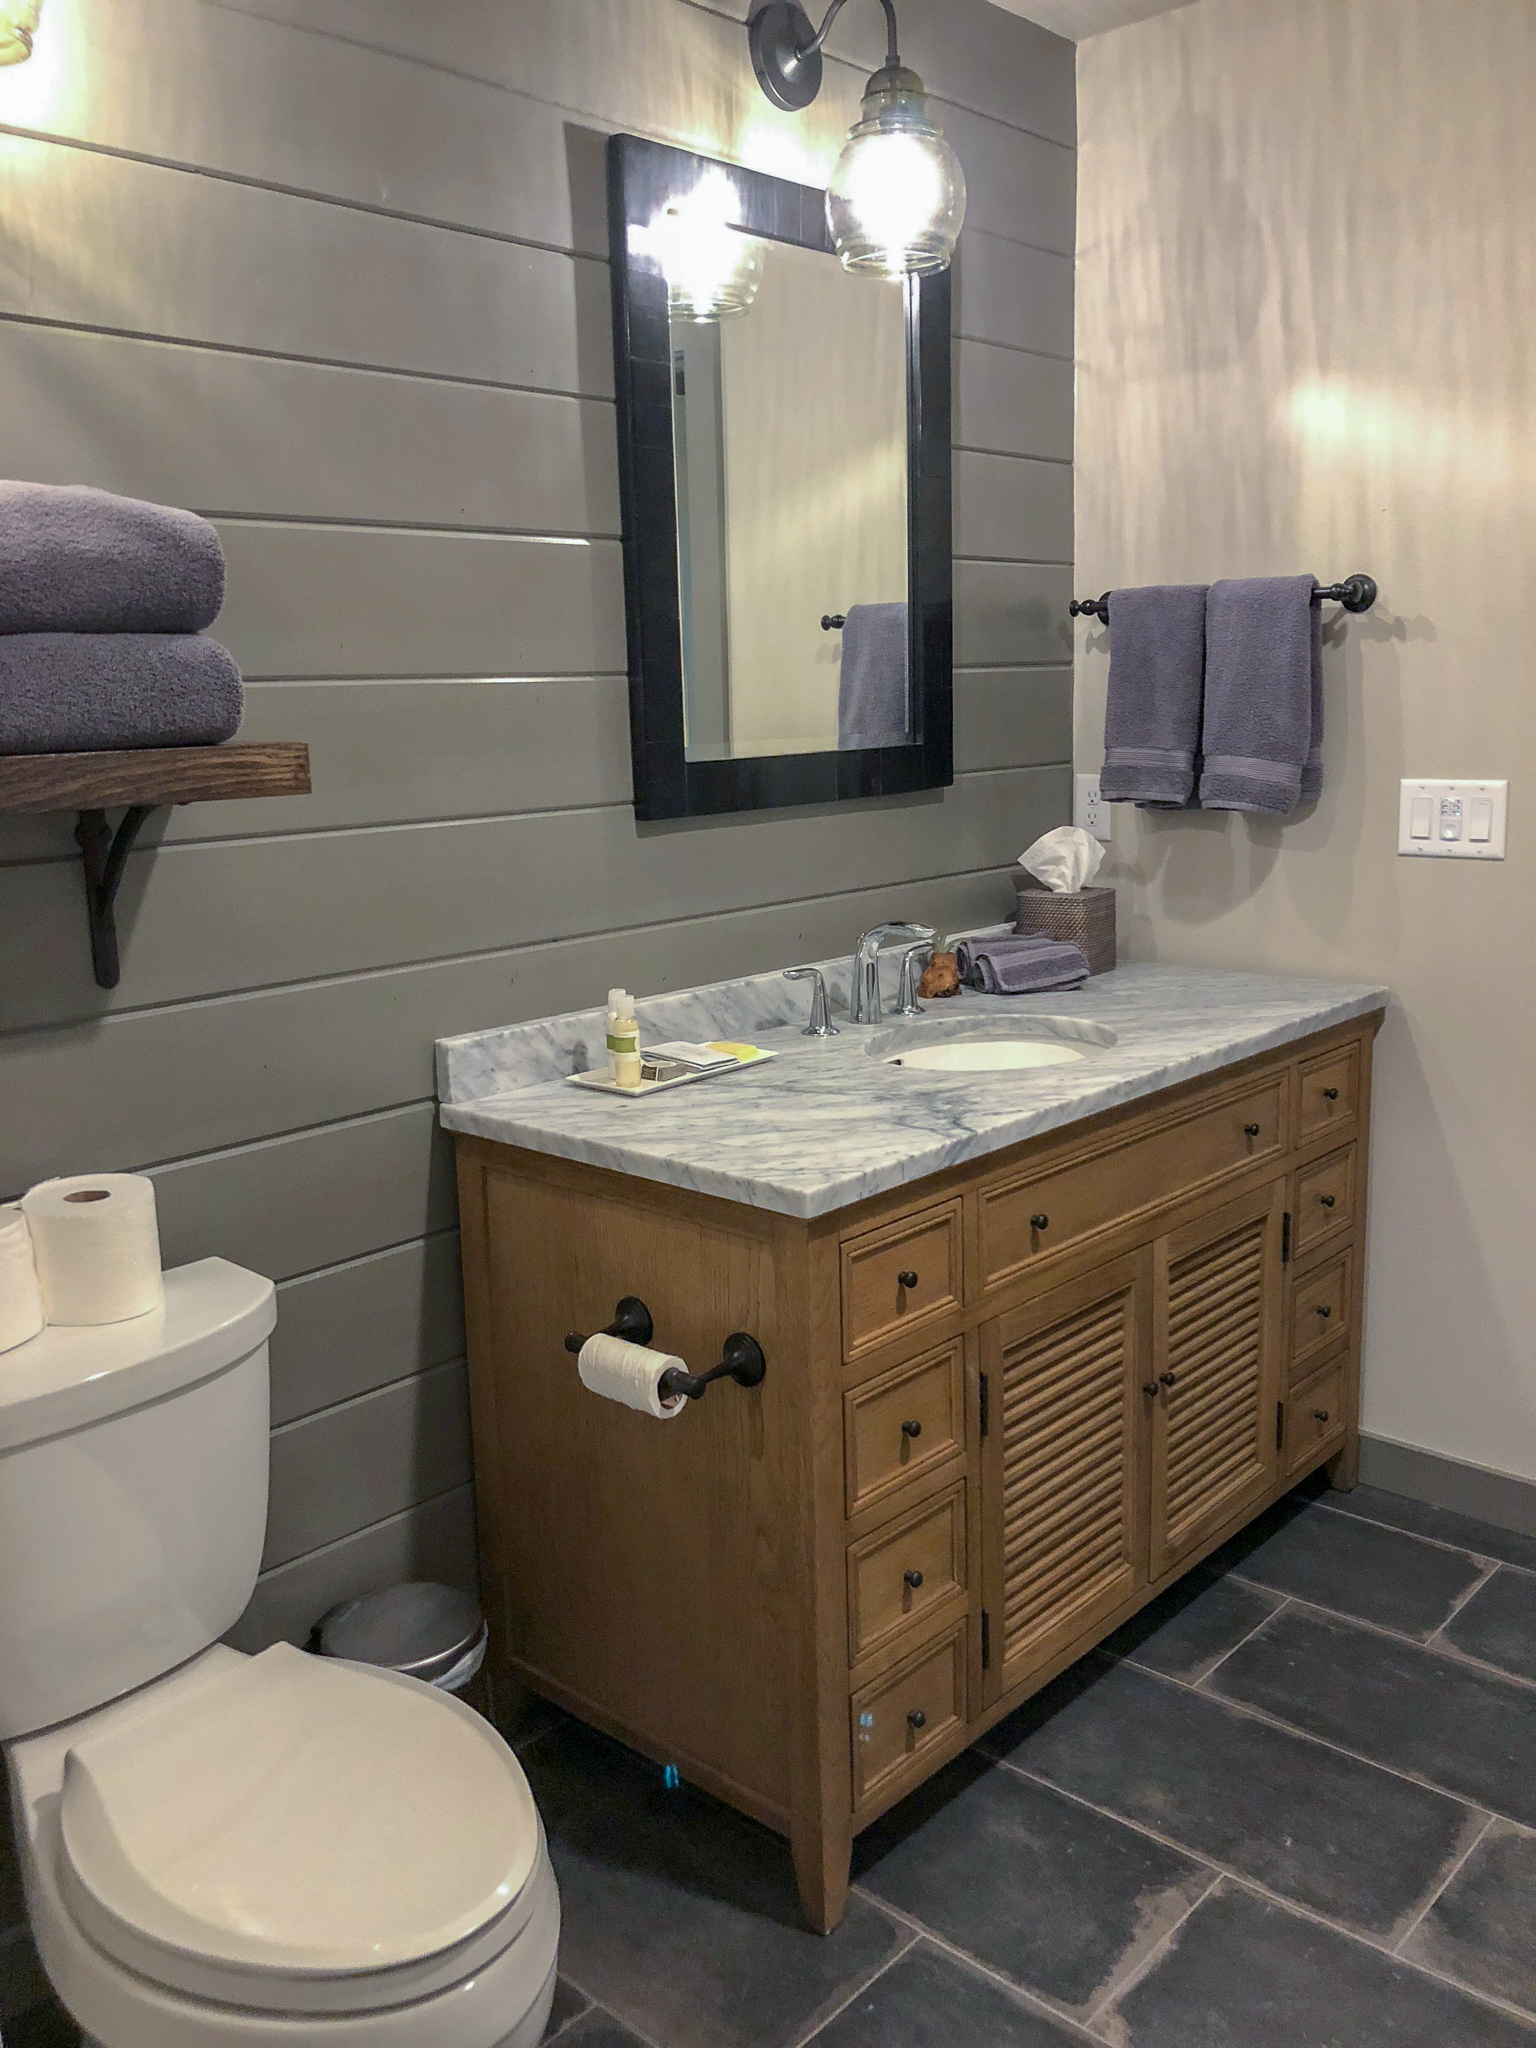 The bathroom comes with a full vanity and handmade lavender bath products